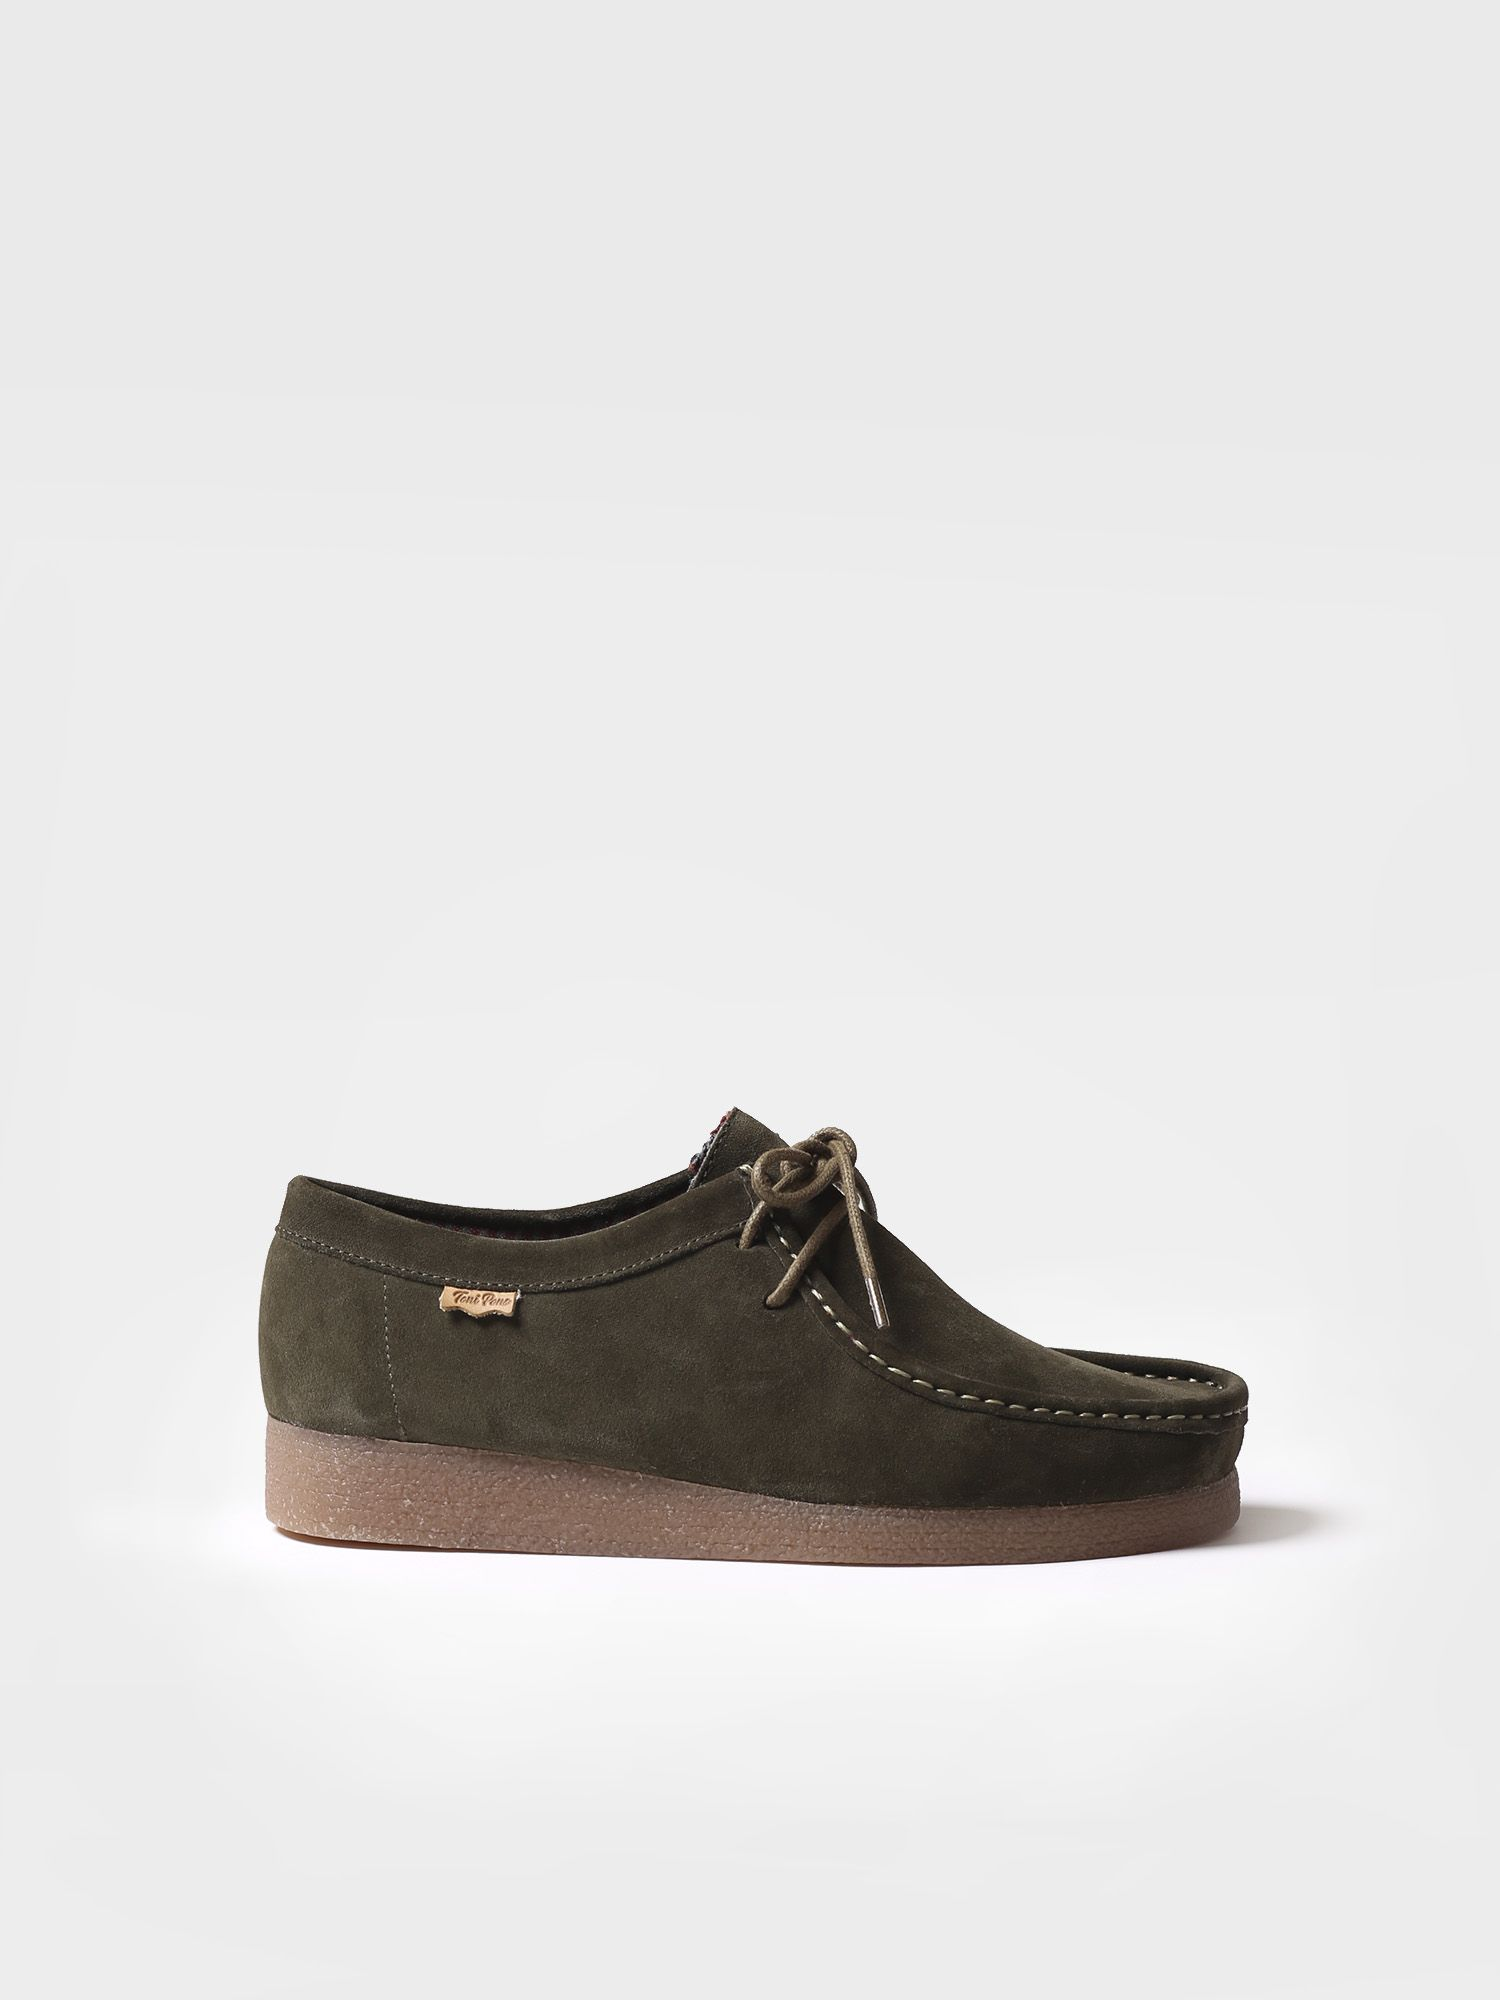 Shoe for men made of suede - KENT-SY